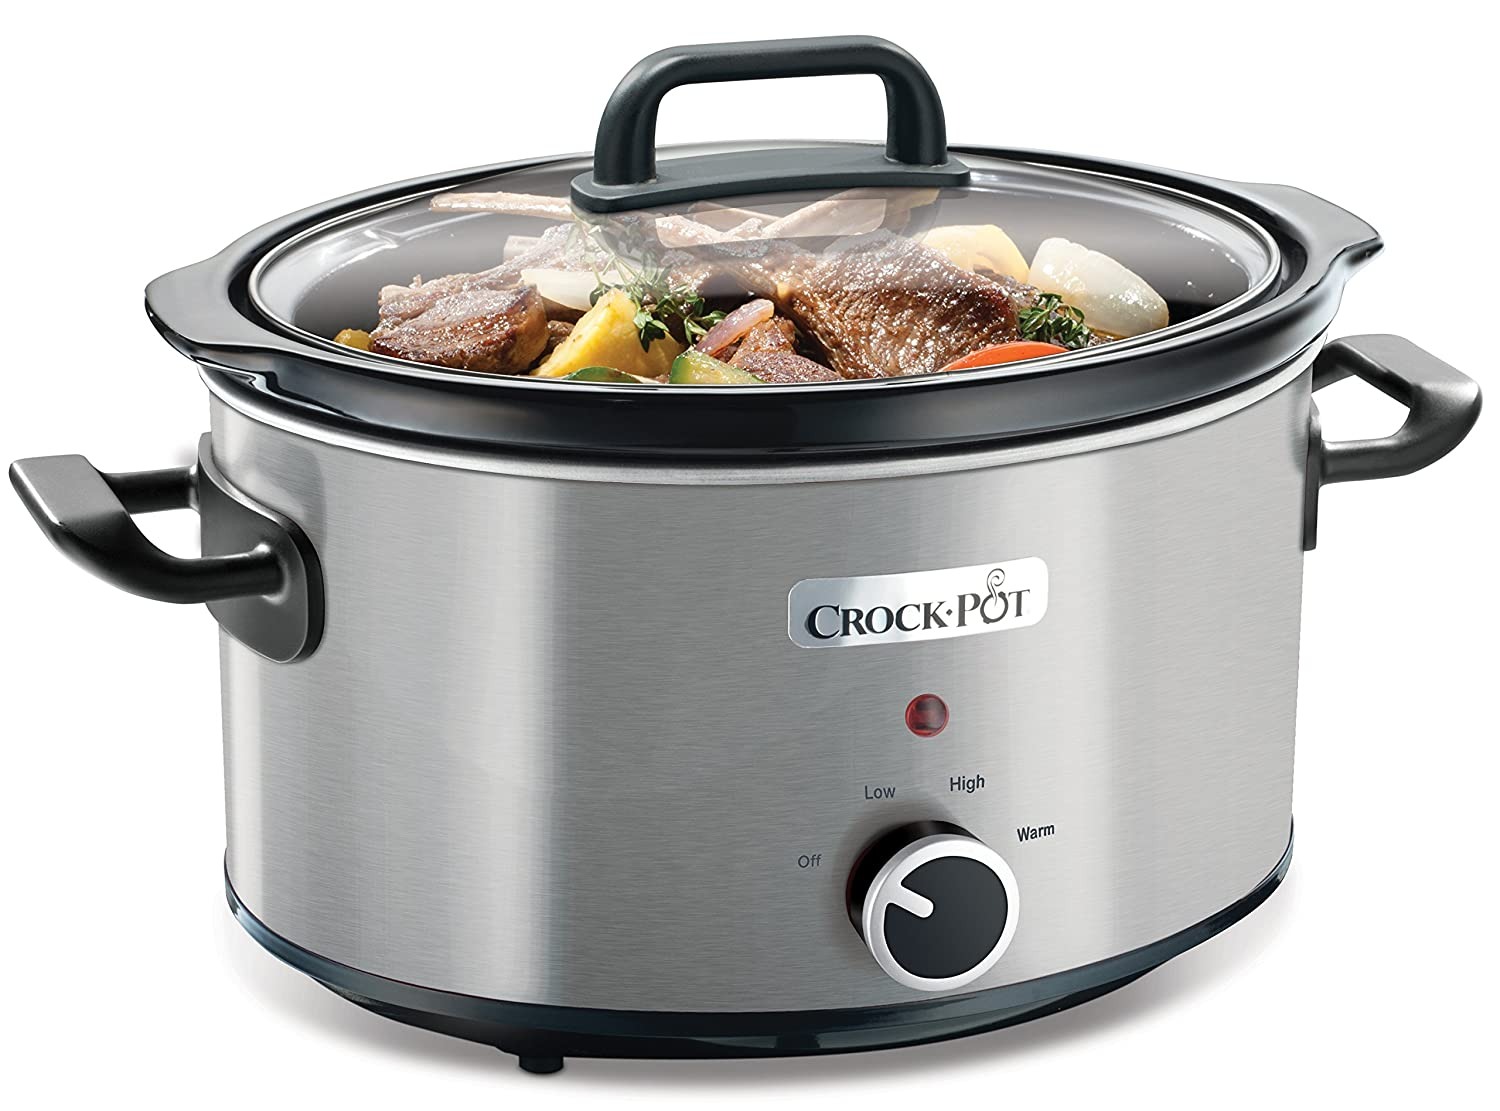 Crock Pot 3.5L Brushed Stainless Steel Slow Cooker 220/240 volt 50HZ (Will not work in USA)